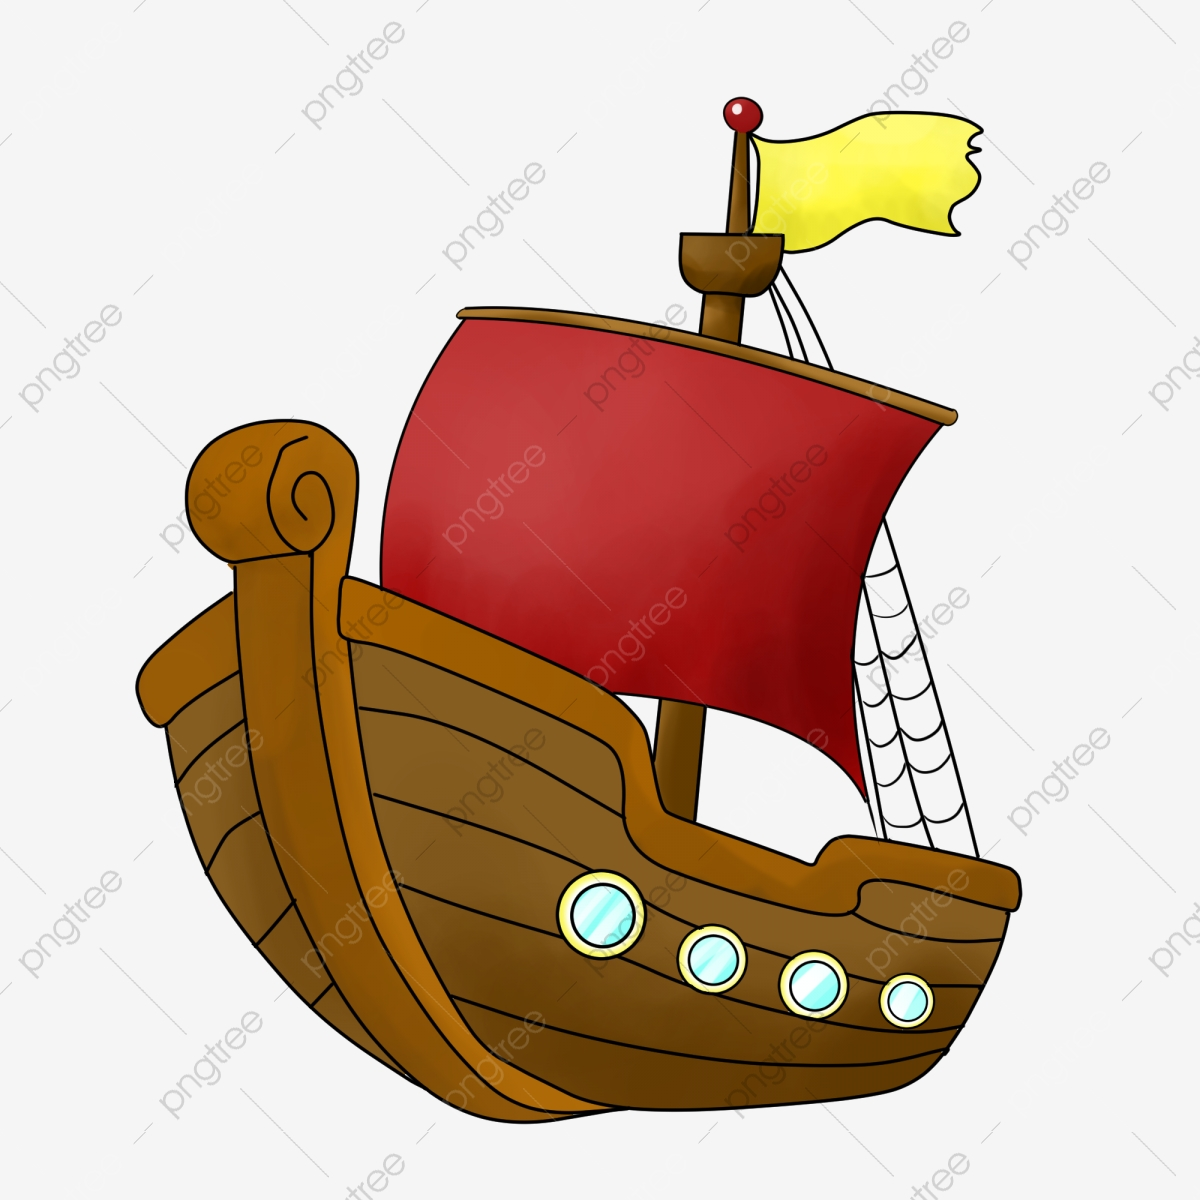 brown ship cartoon illustration brown ship cartoon illustration boat illustration png transparent clipart image and psd file for free download https pngtree com freepng brown ship cartoon illustration 4525044 html